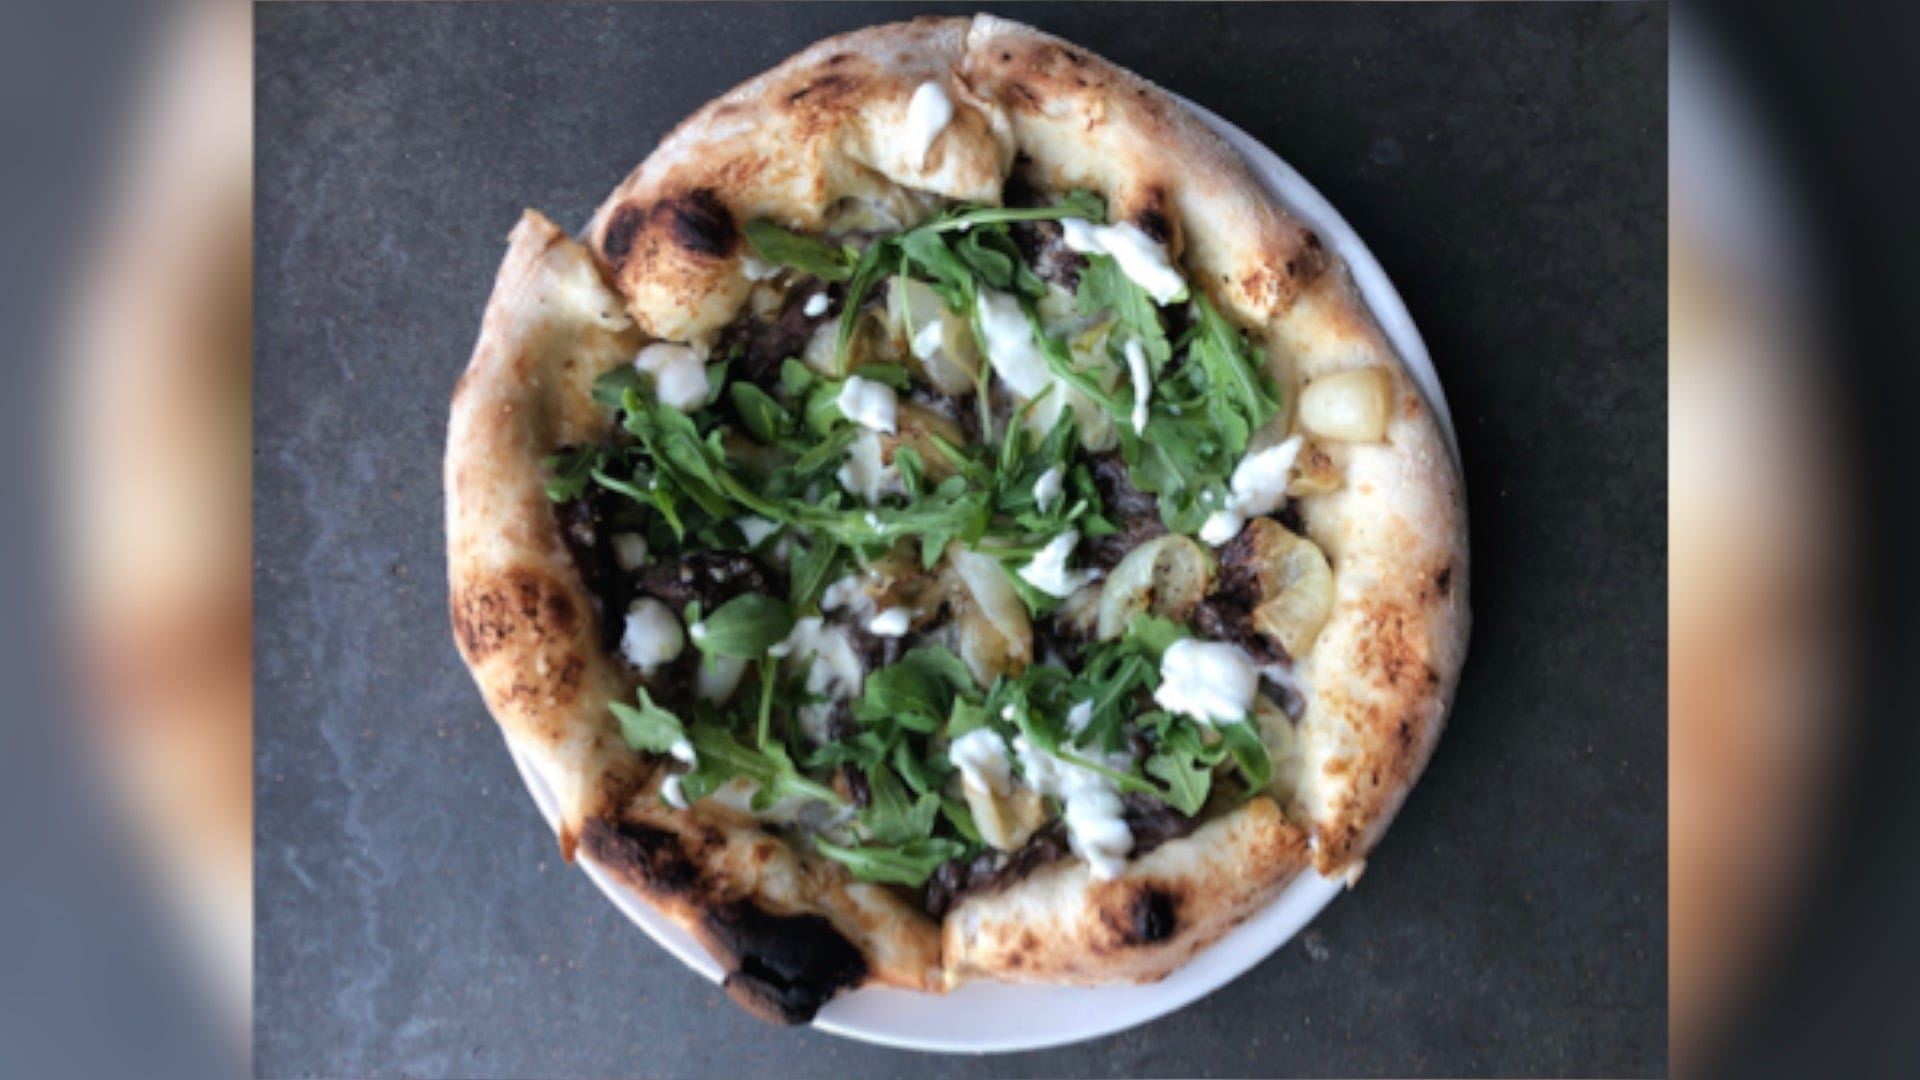 Katies Pizza Announces New Lions Choice Pizza In October